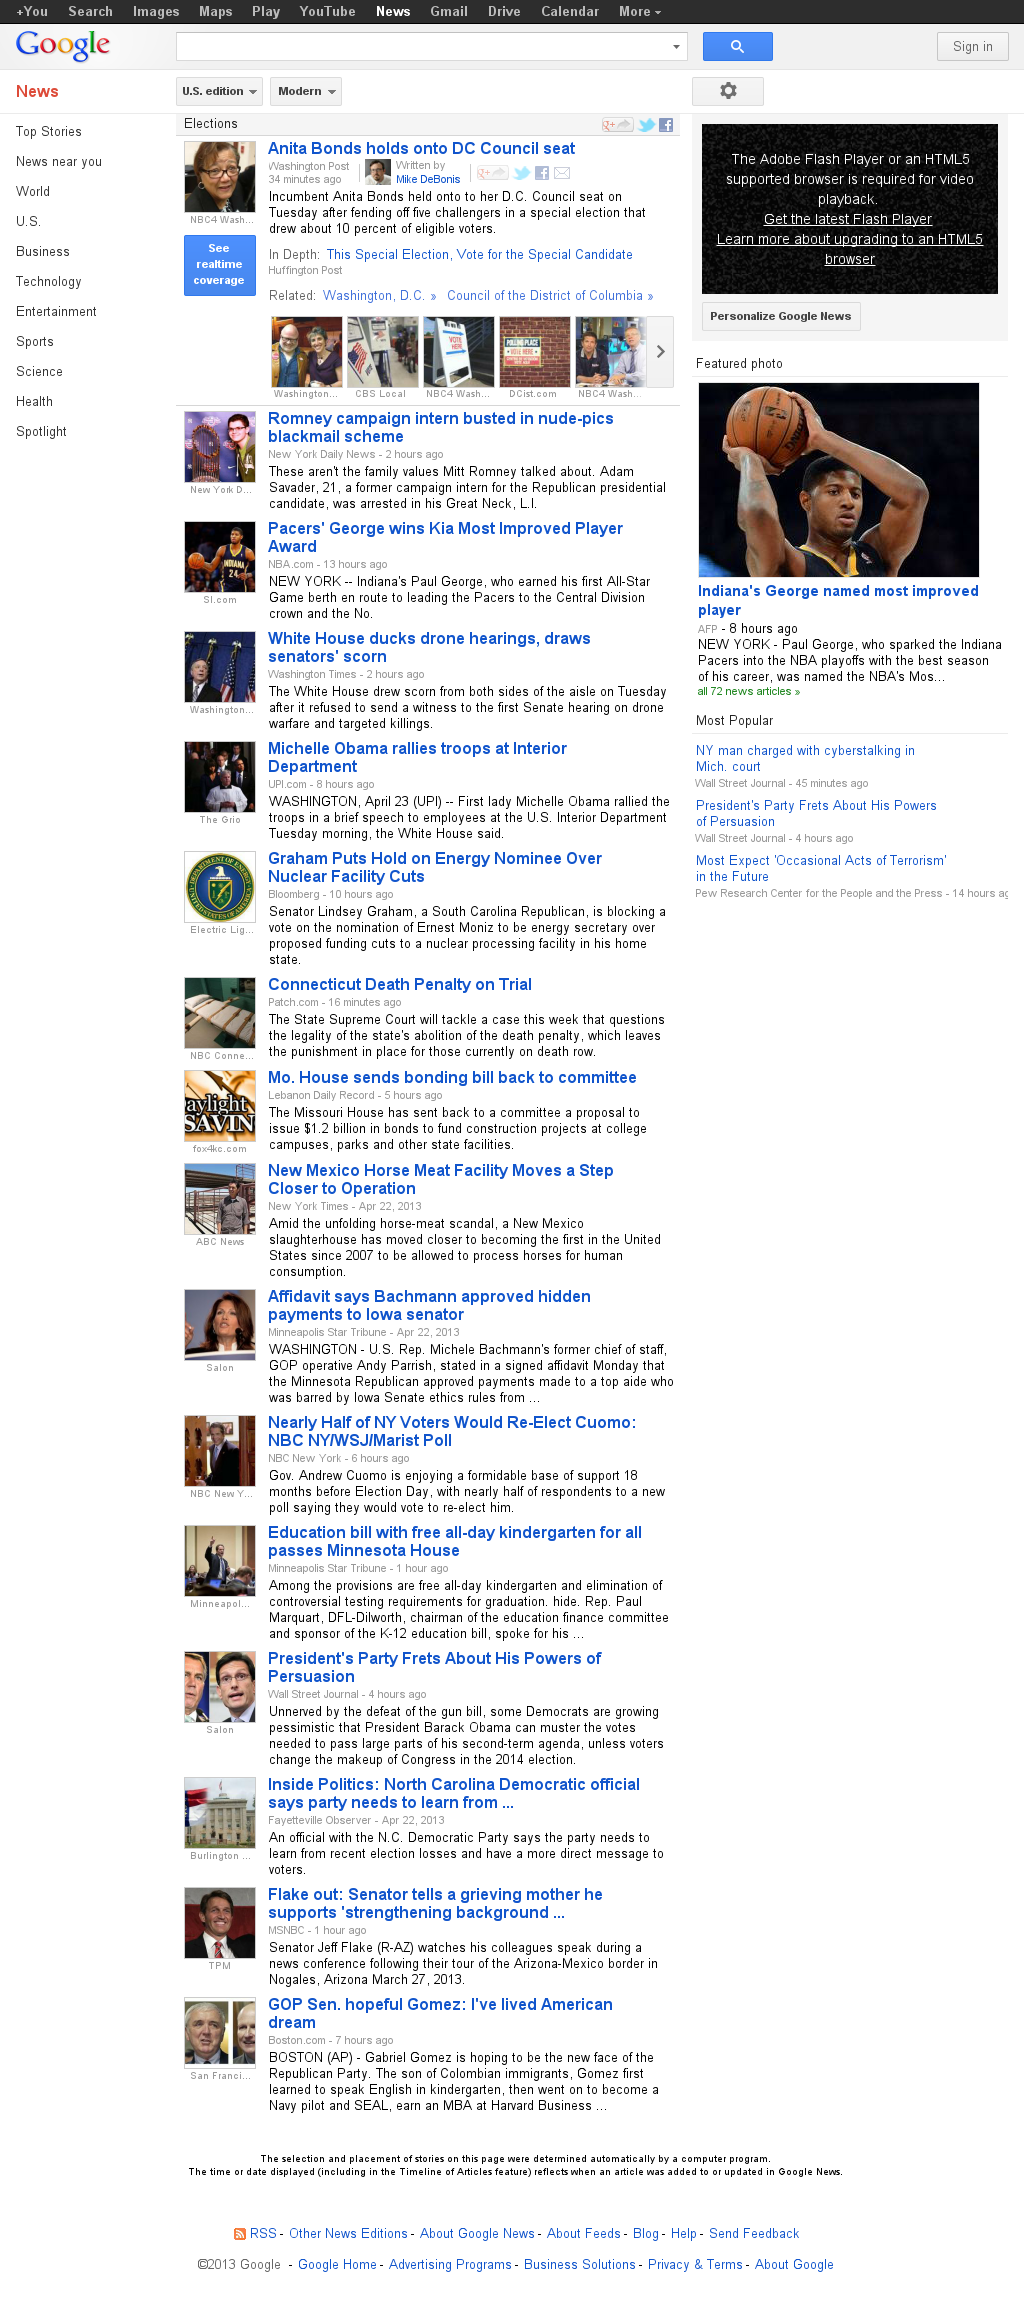 Google News: Elections at Wednesday April 24, 2013, 4:08 a.m. UTC